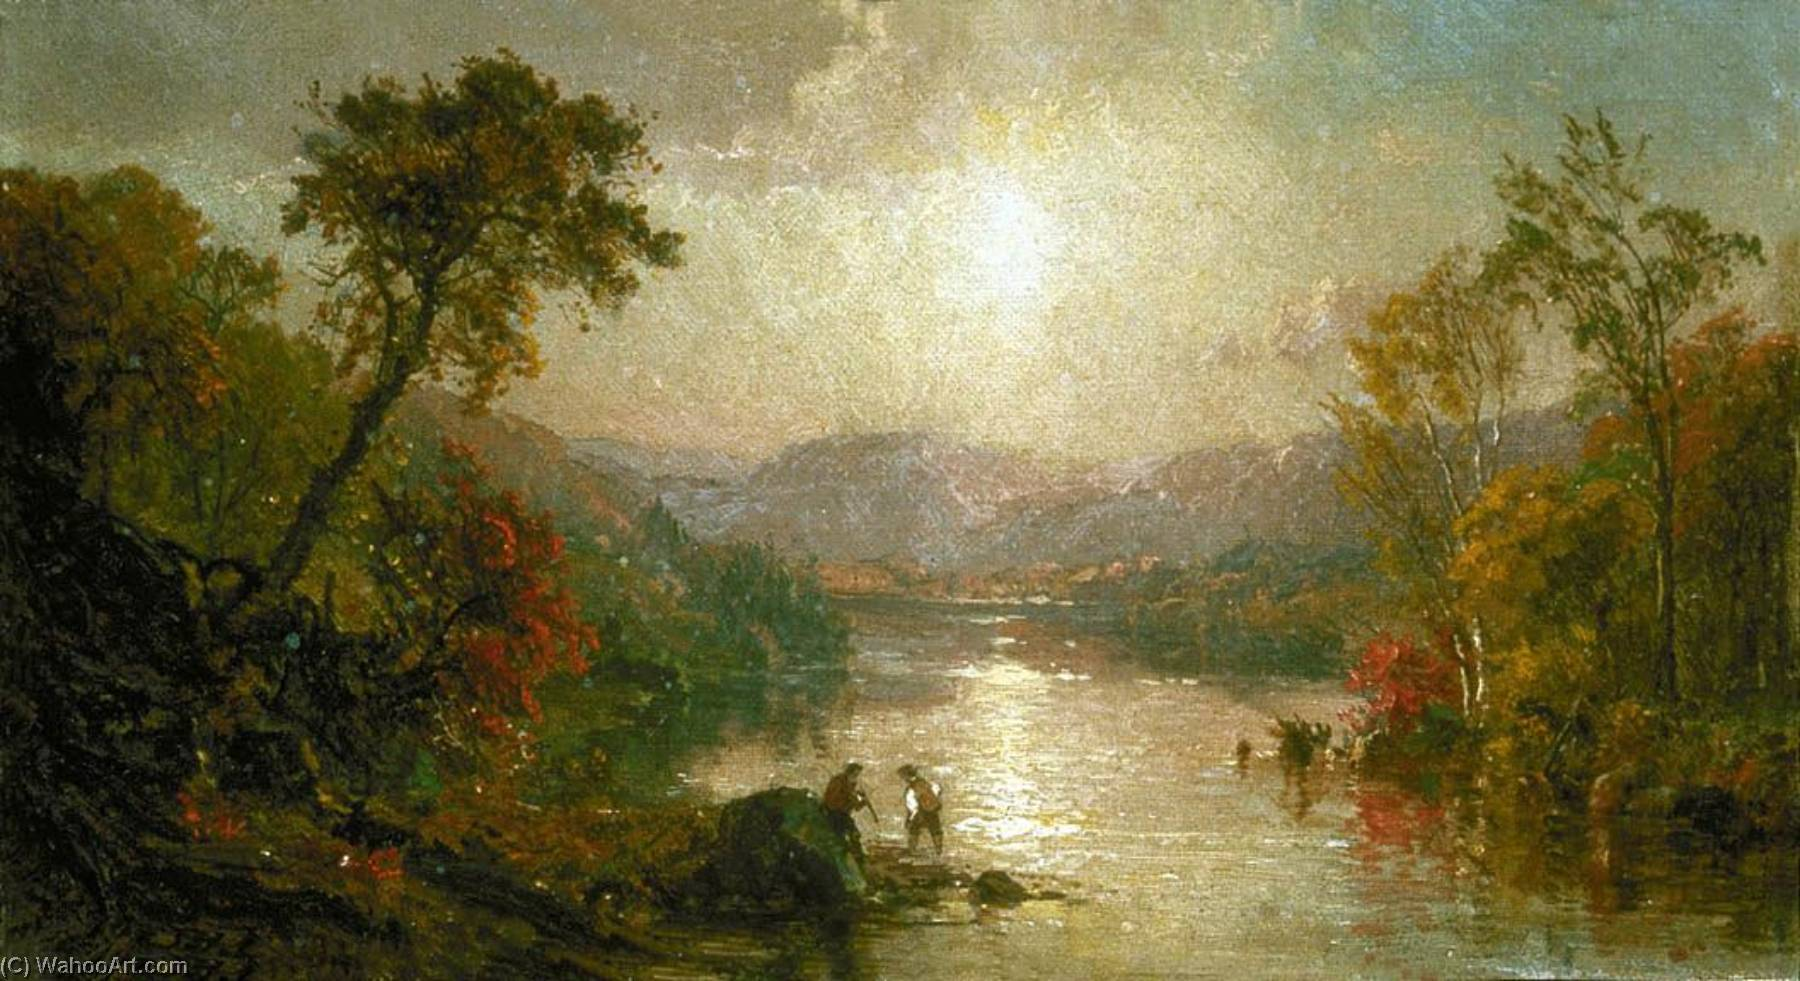 Indian Summer, Oil On Canvas by Jasper Francis Cropsey (1823-1900, United States)